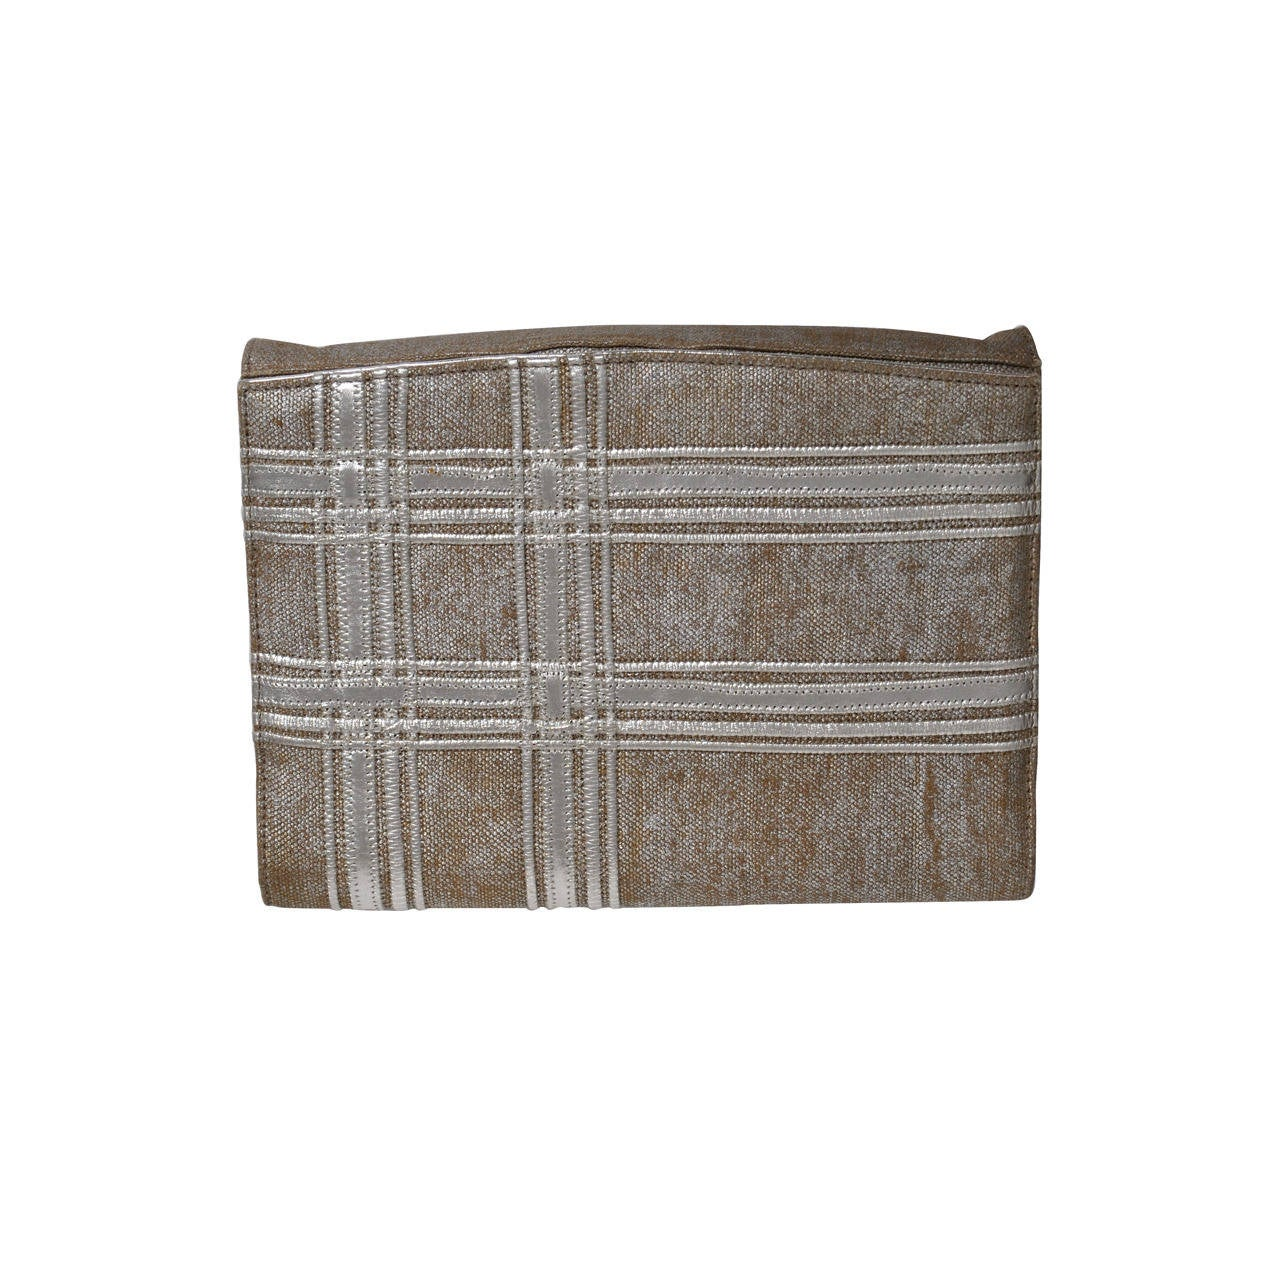 Carlos Falchi Beige Linen and Silver Clutch For Sale